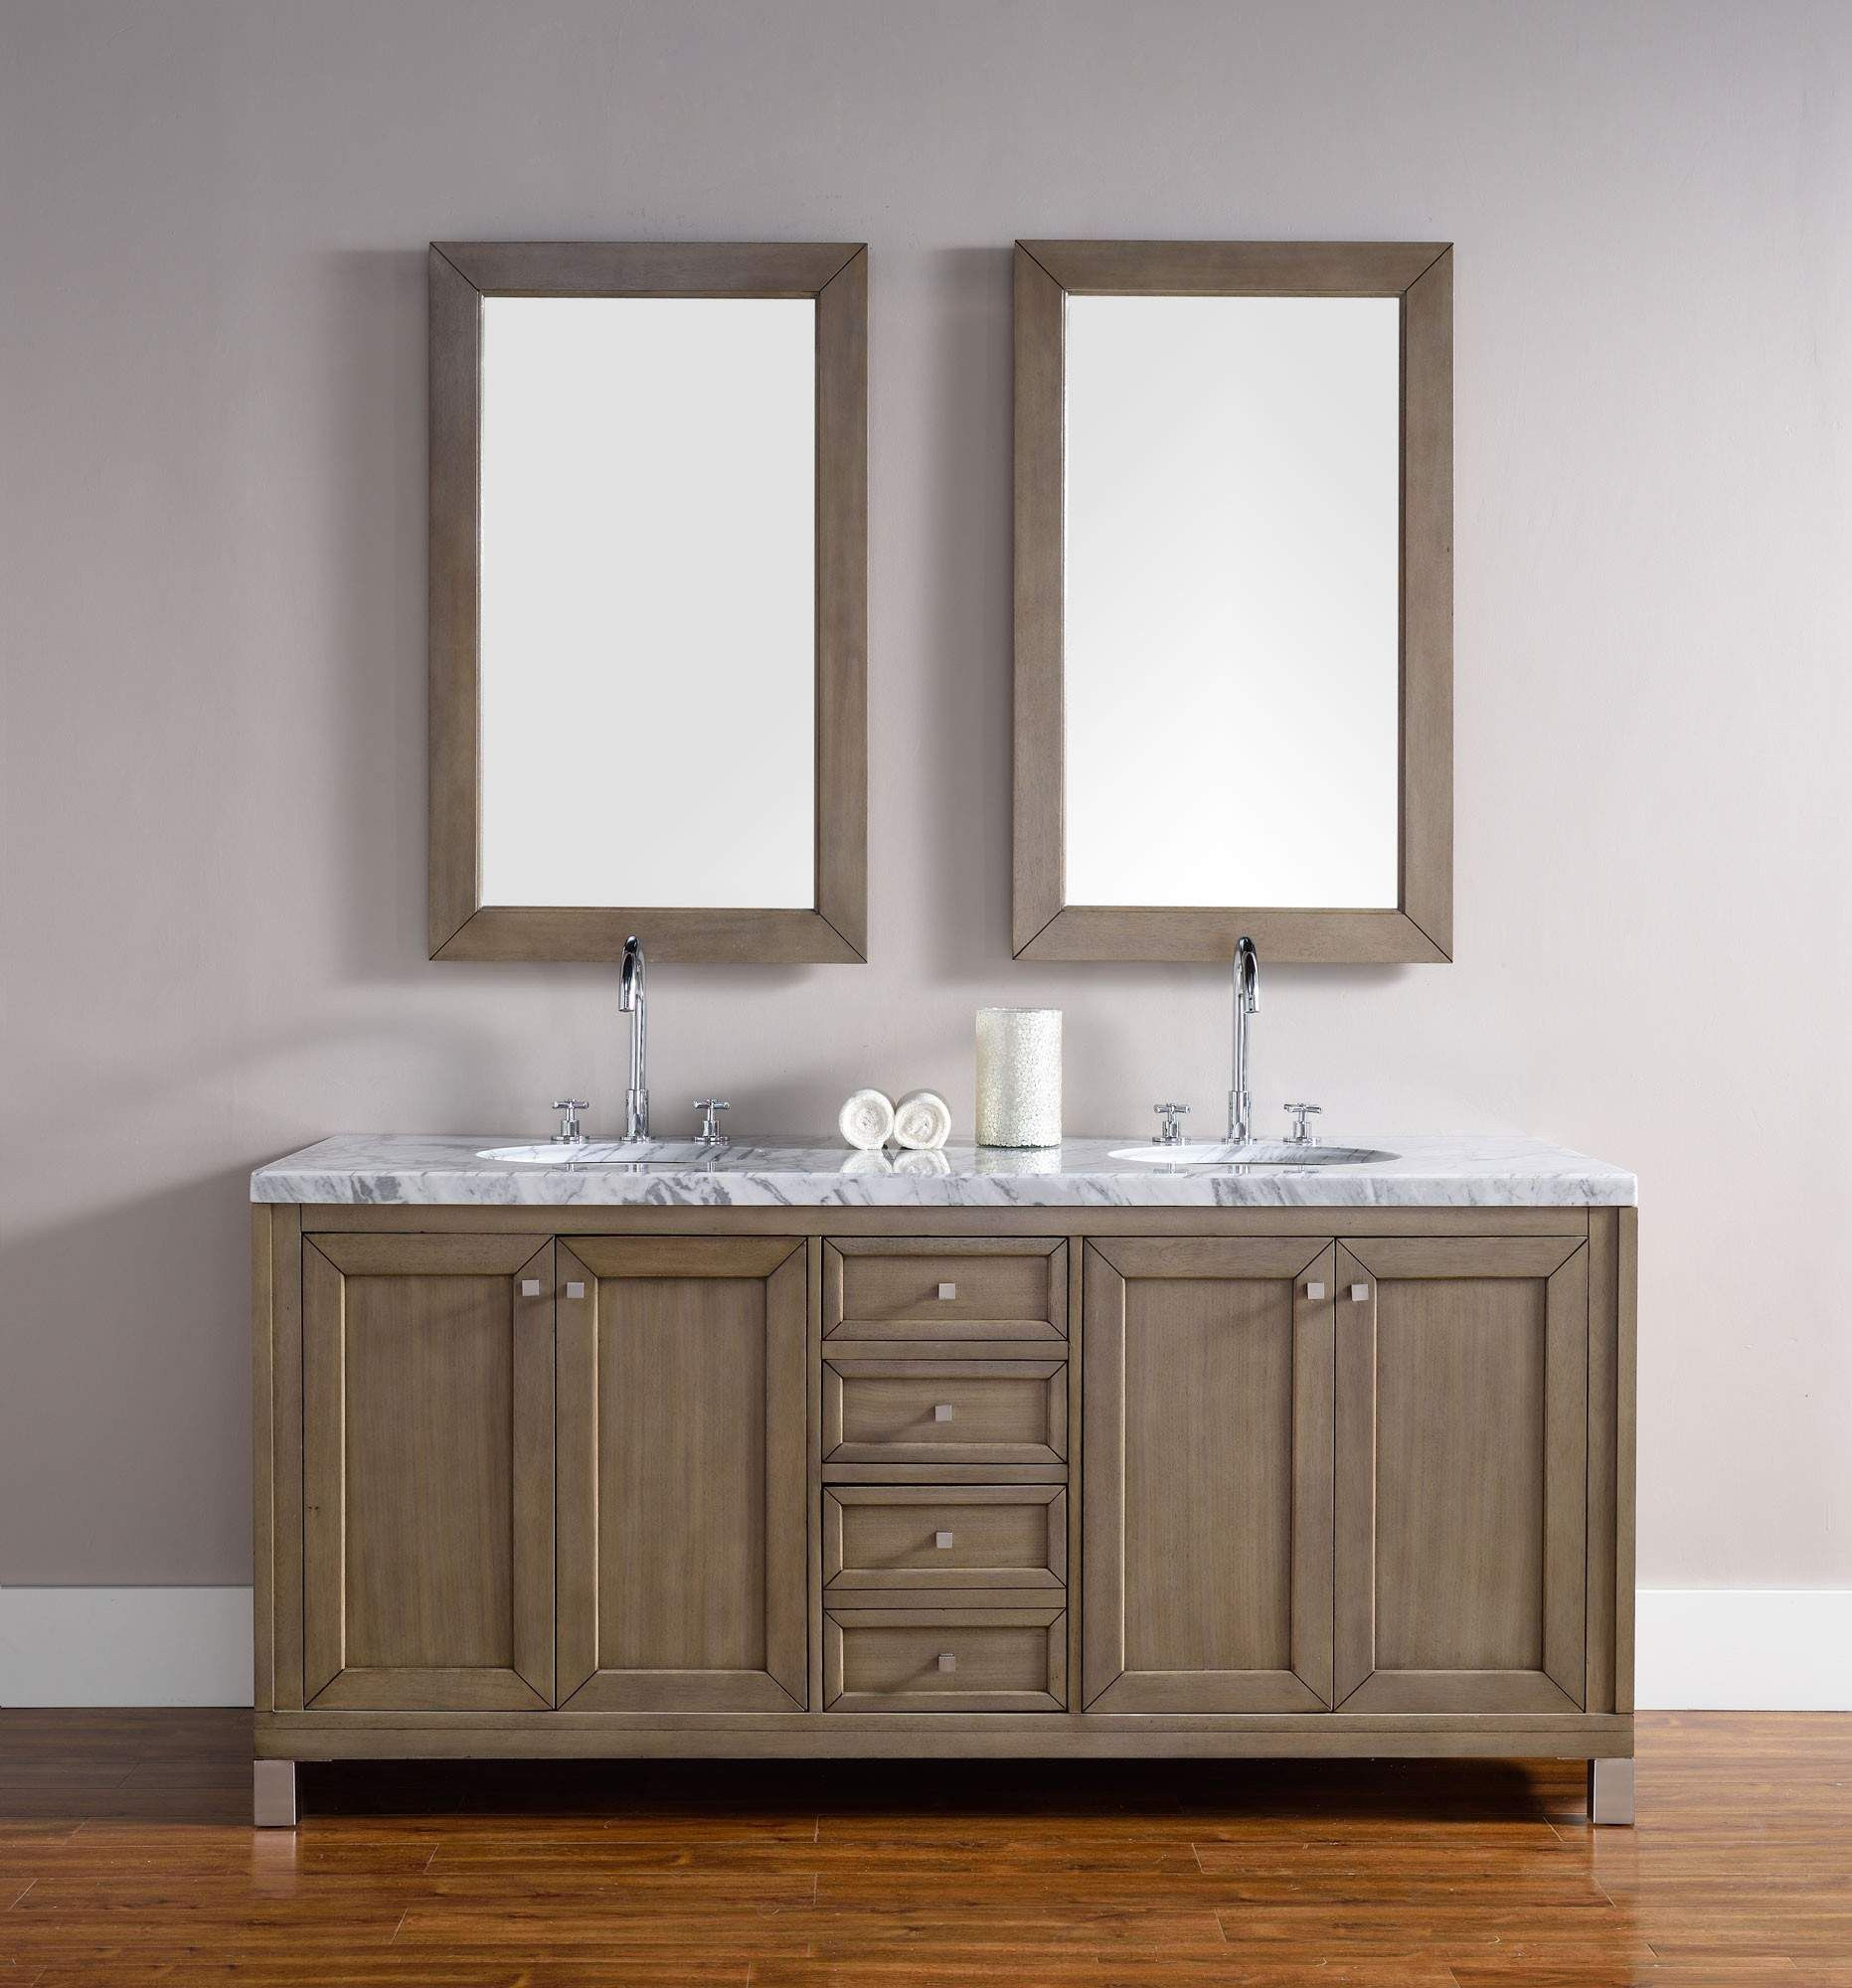 vanity double wmro gr ed sq virtu winterfell usa product